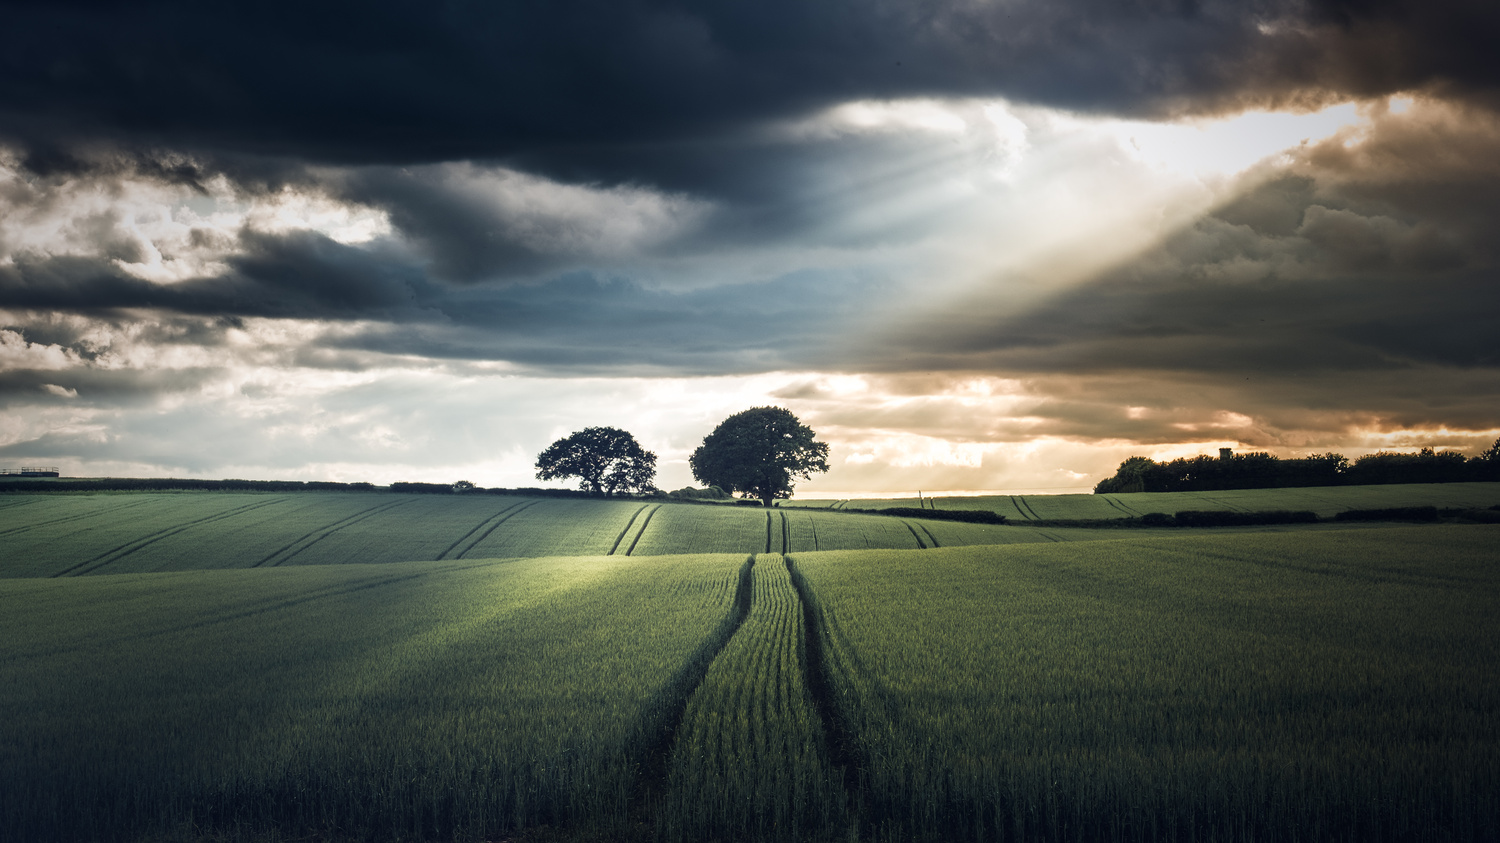 A stormy sunset by Lee Higgs